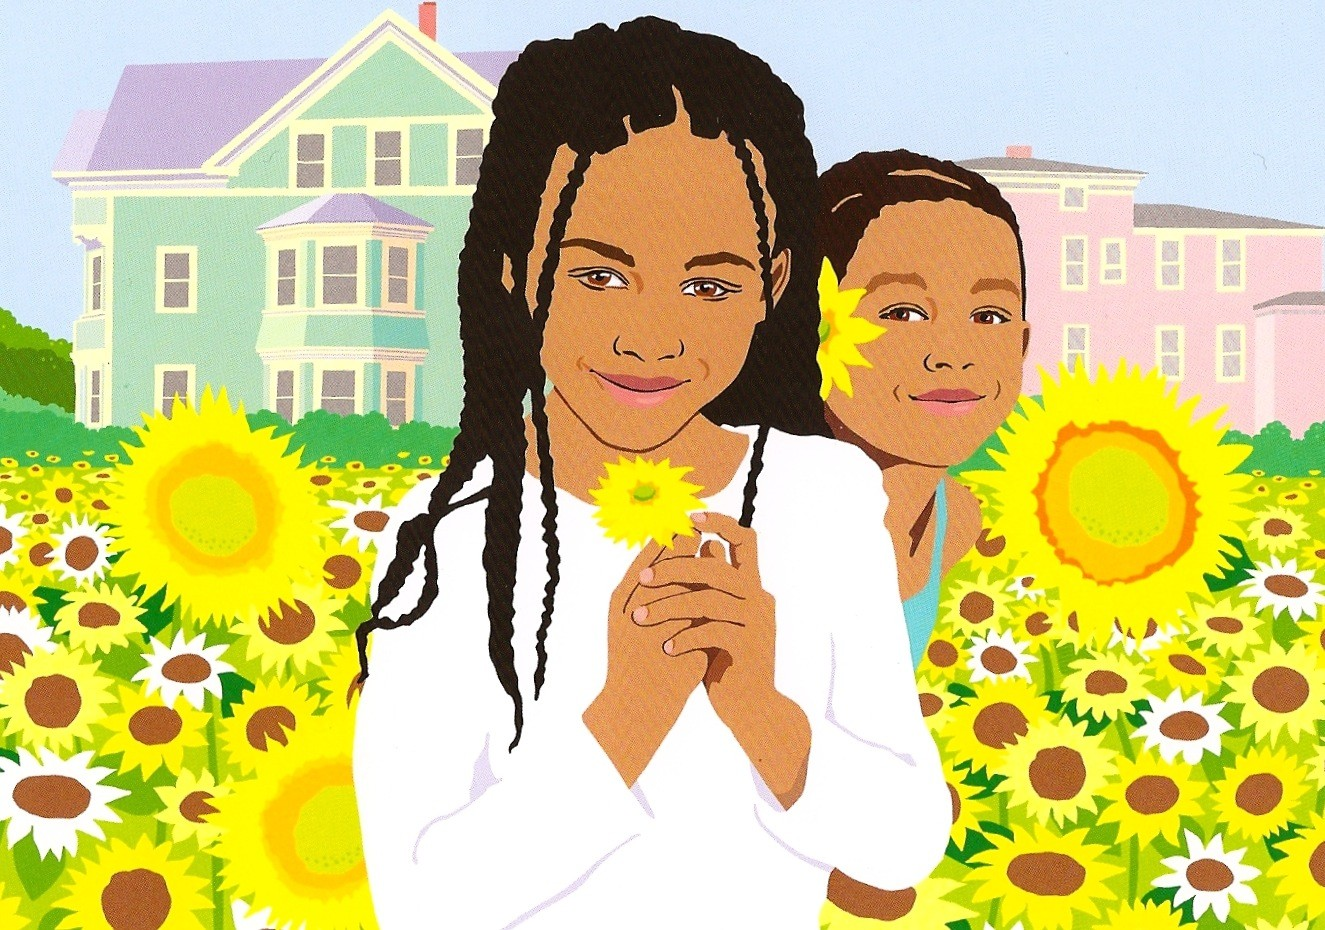 The cover of the 2014 Rhode Island Kids Count Factbook, which found an increasing gap in the well being of Rhode Island's children based upon racial, ethnic and economic indicators.